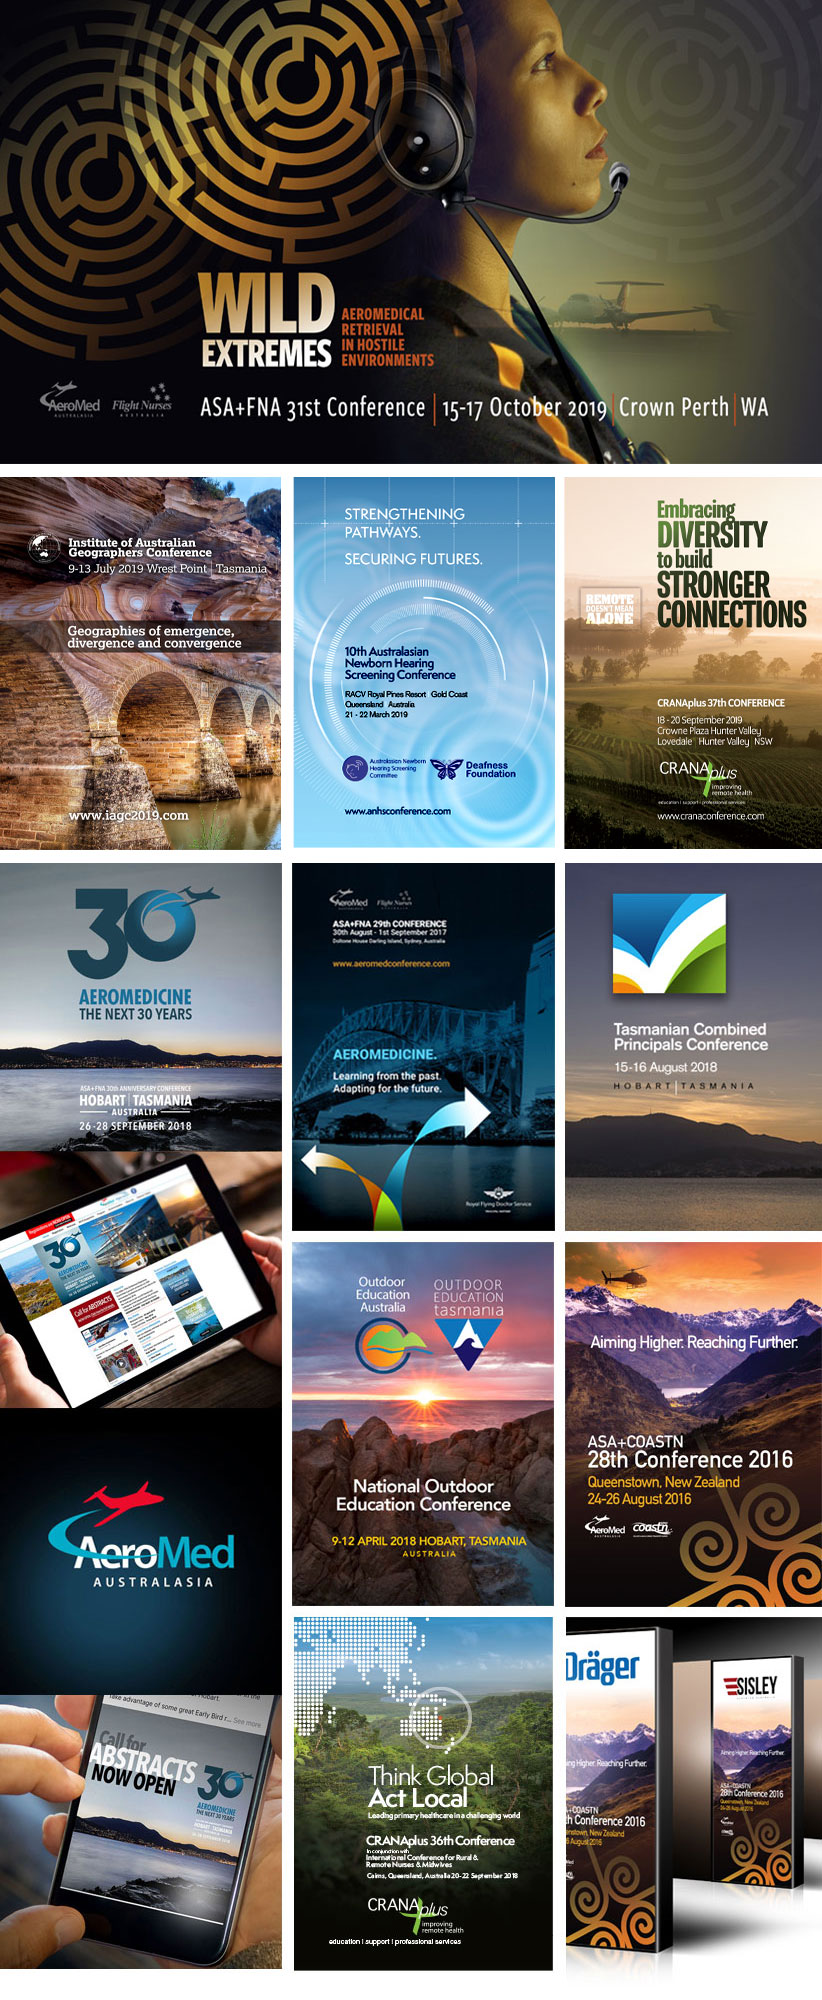 Brand work completed for Kate Smith and Conference Design